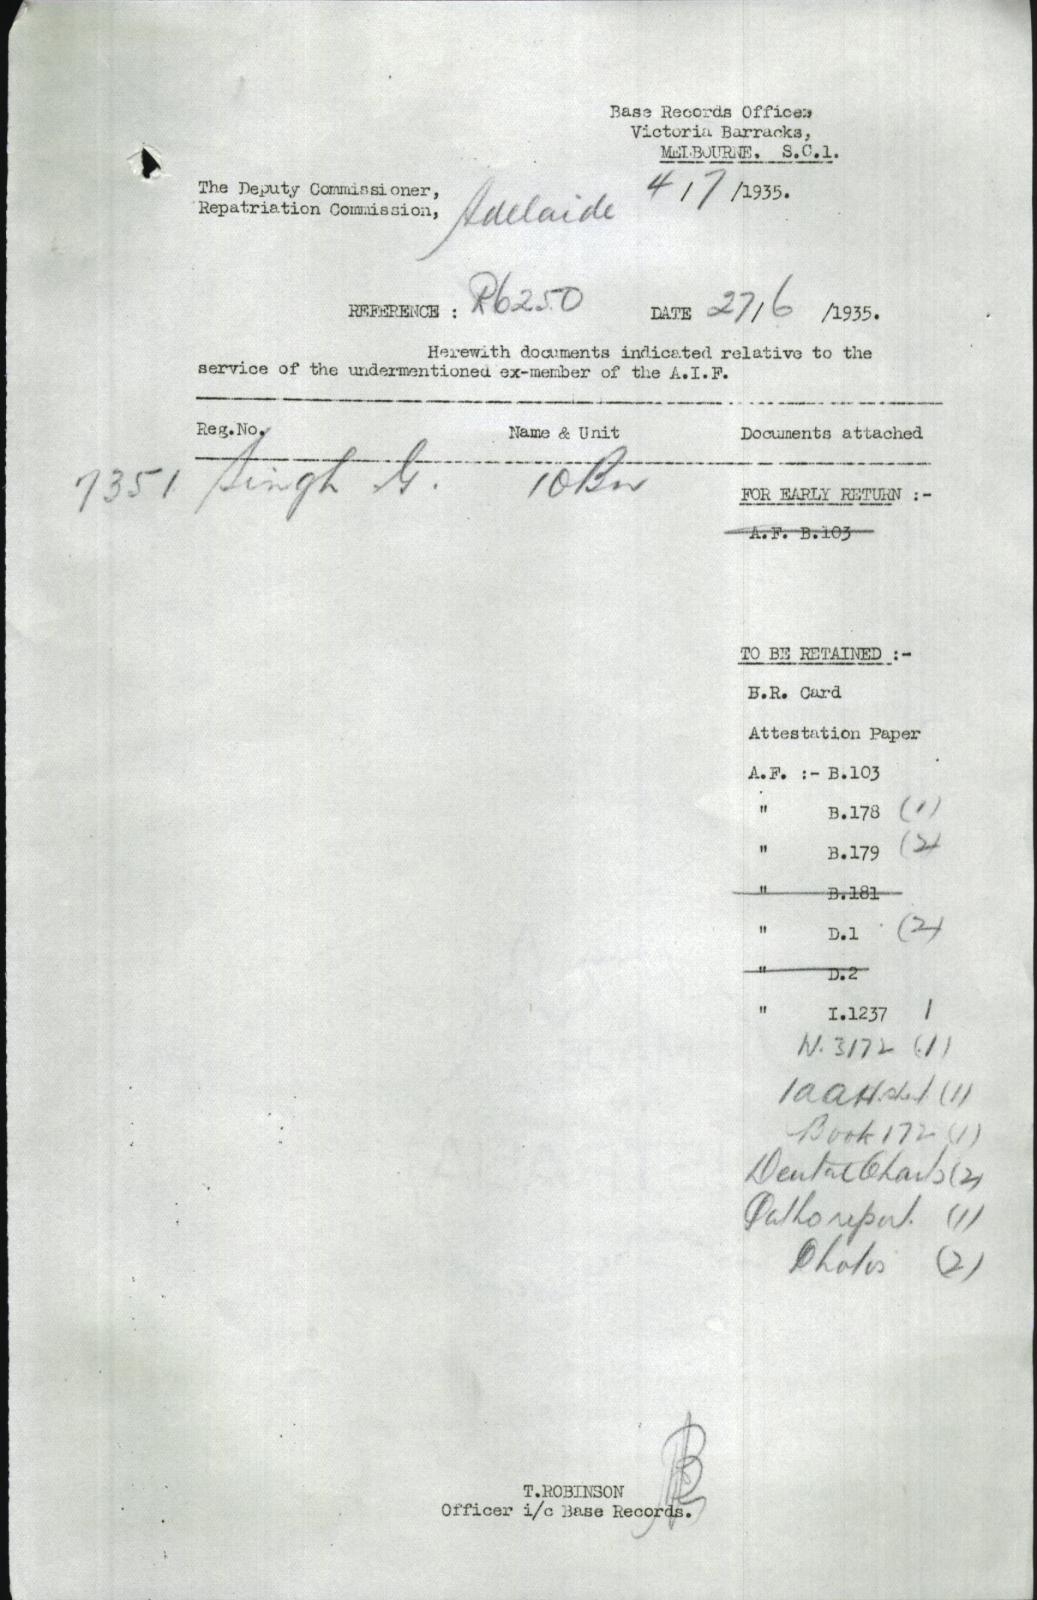 Enlistment form for WW1. Source: National Archives of Australia (NAA:B2455, Singh Ganessa, 8085592) https://recordsearch.naa.gov.au/SearchNRetrieve/Interface/ViewImage.aspx?B=8085592